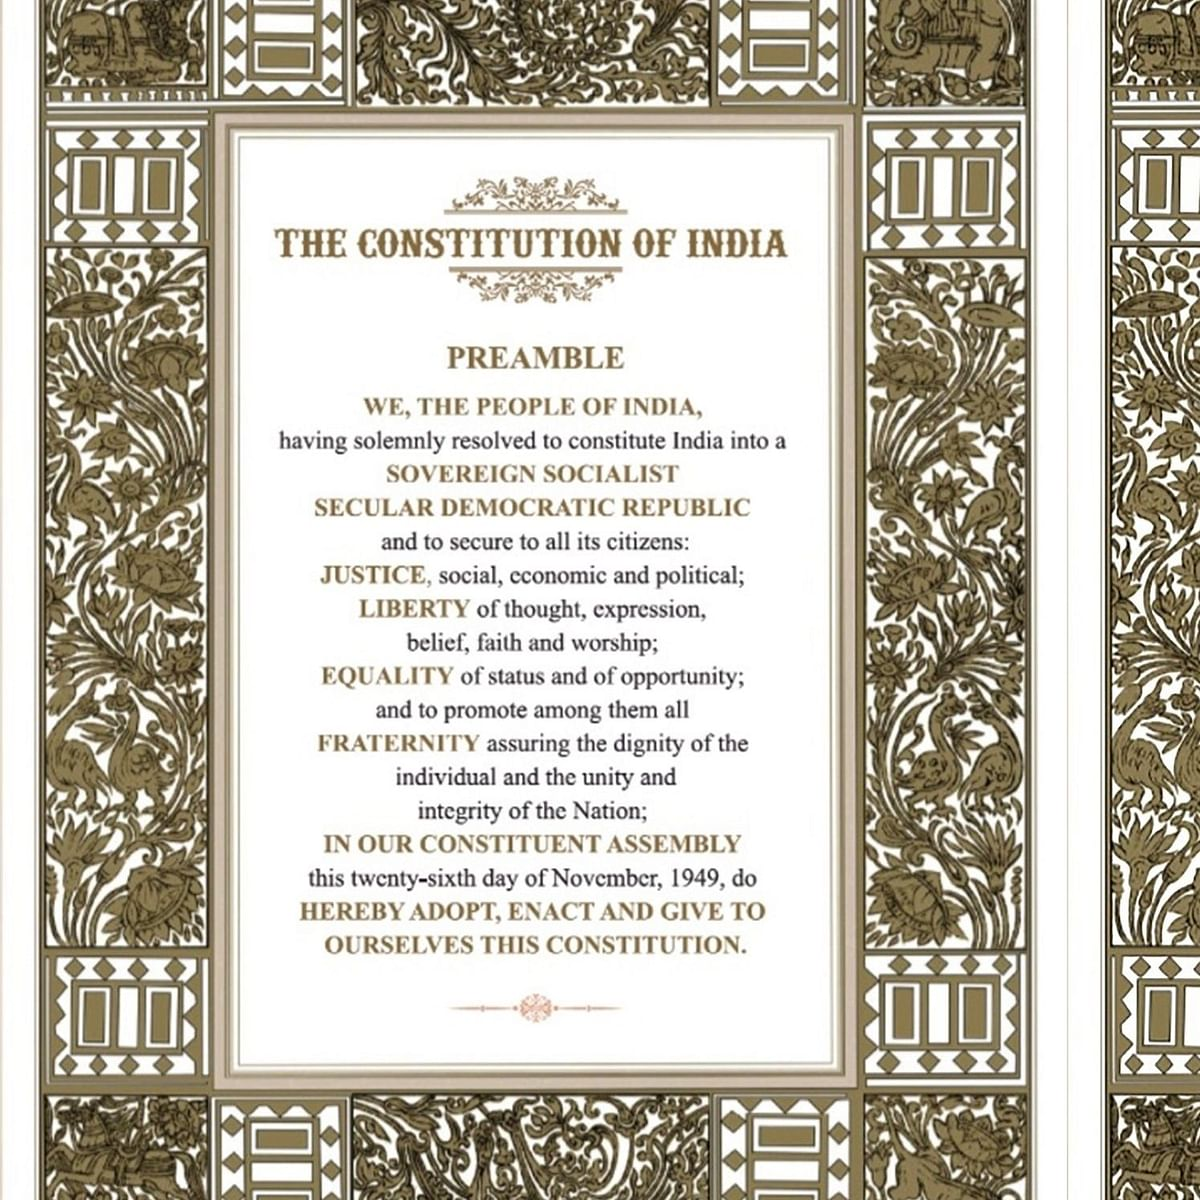 Republic Day 2021: Full text of Preamble to the Indian Constitution in English, Hindi, and Marathi